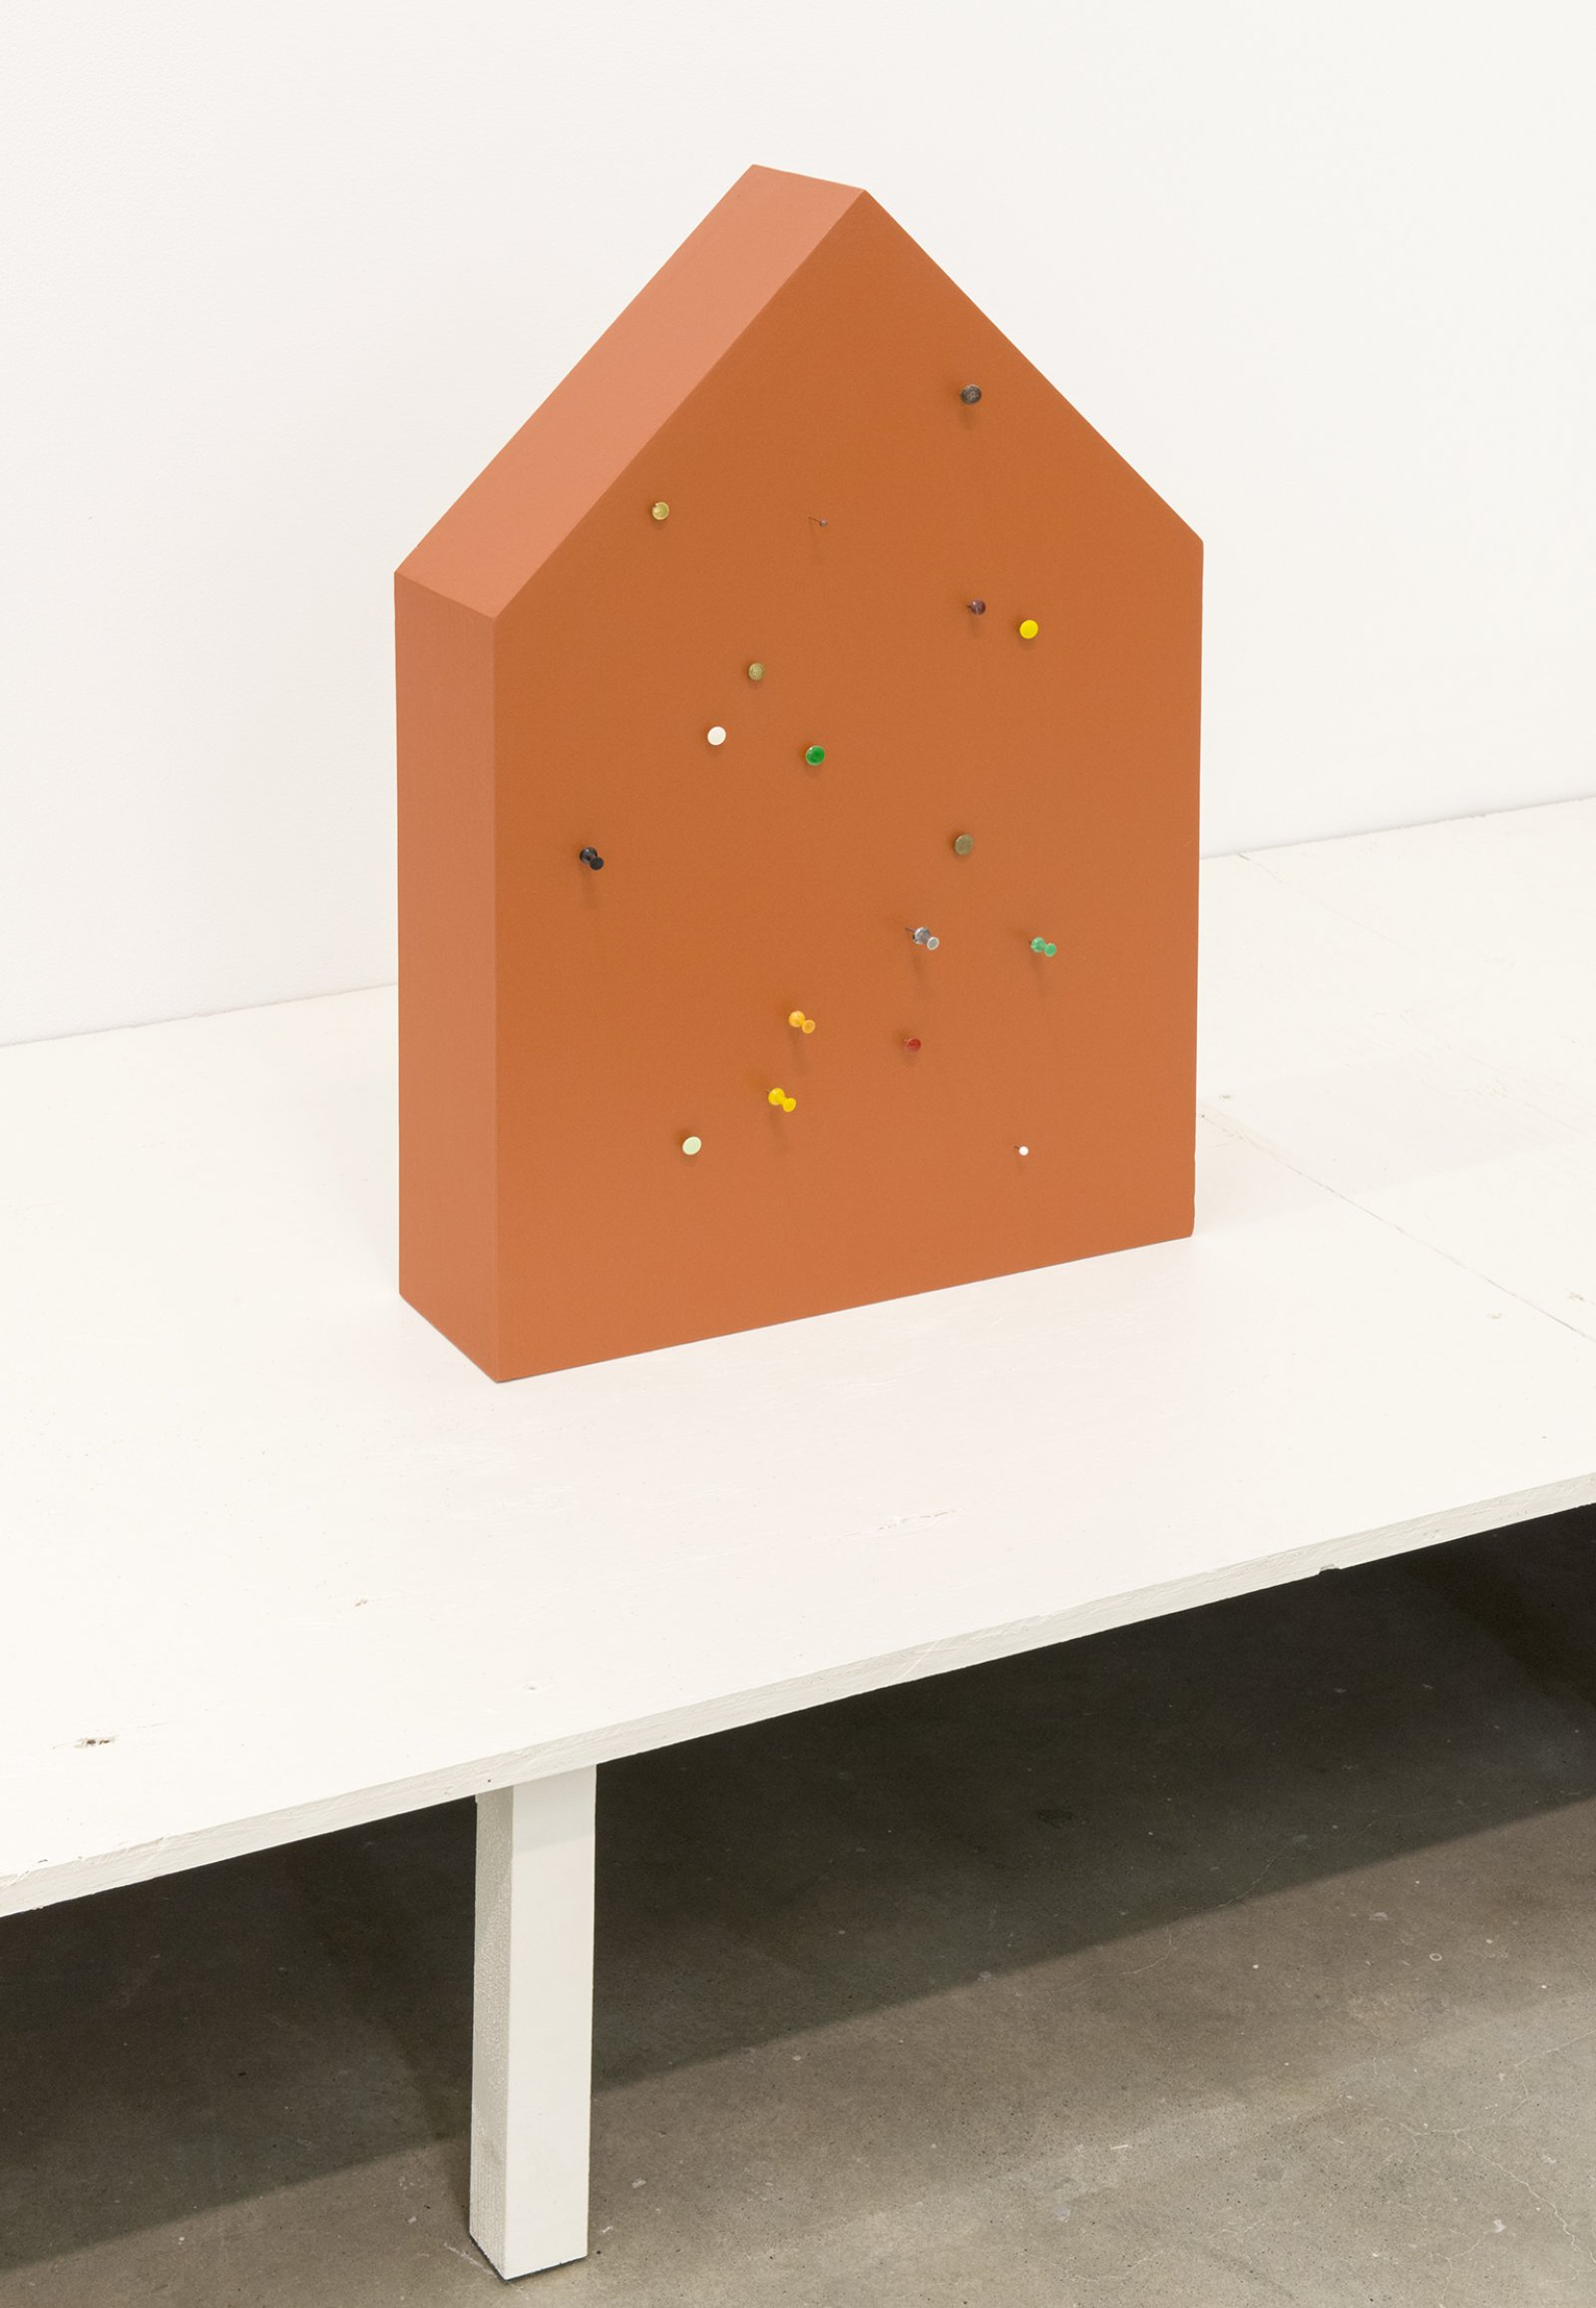 Gareth Moore, WP-01 PP, 2013, wood, paint, push pins, 24 x 16 x 5 in. (61 x 41 x 12 cm)   by Ashes Withyman